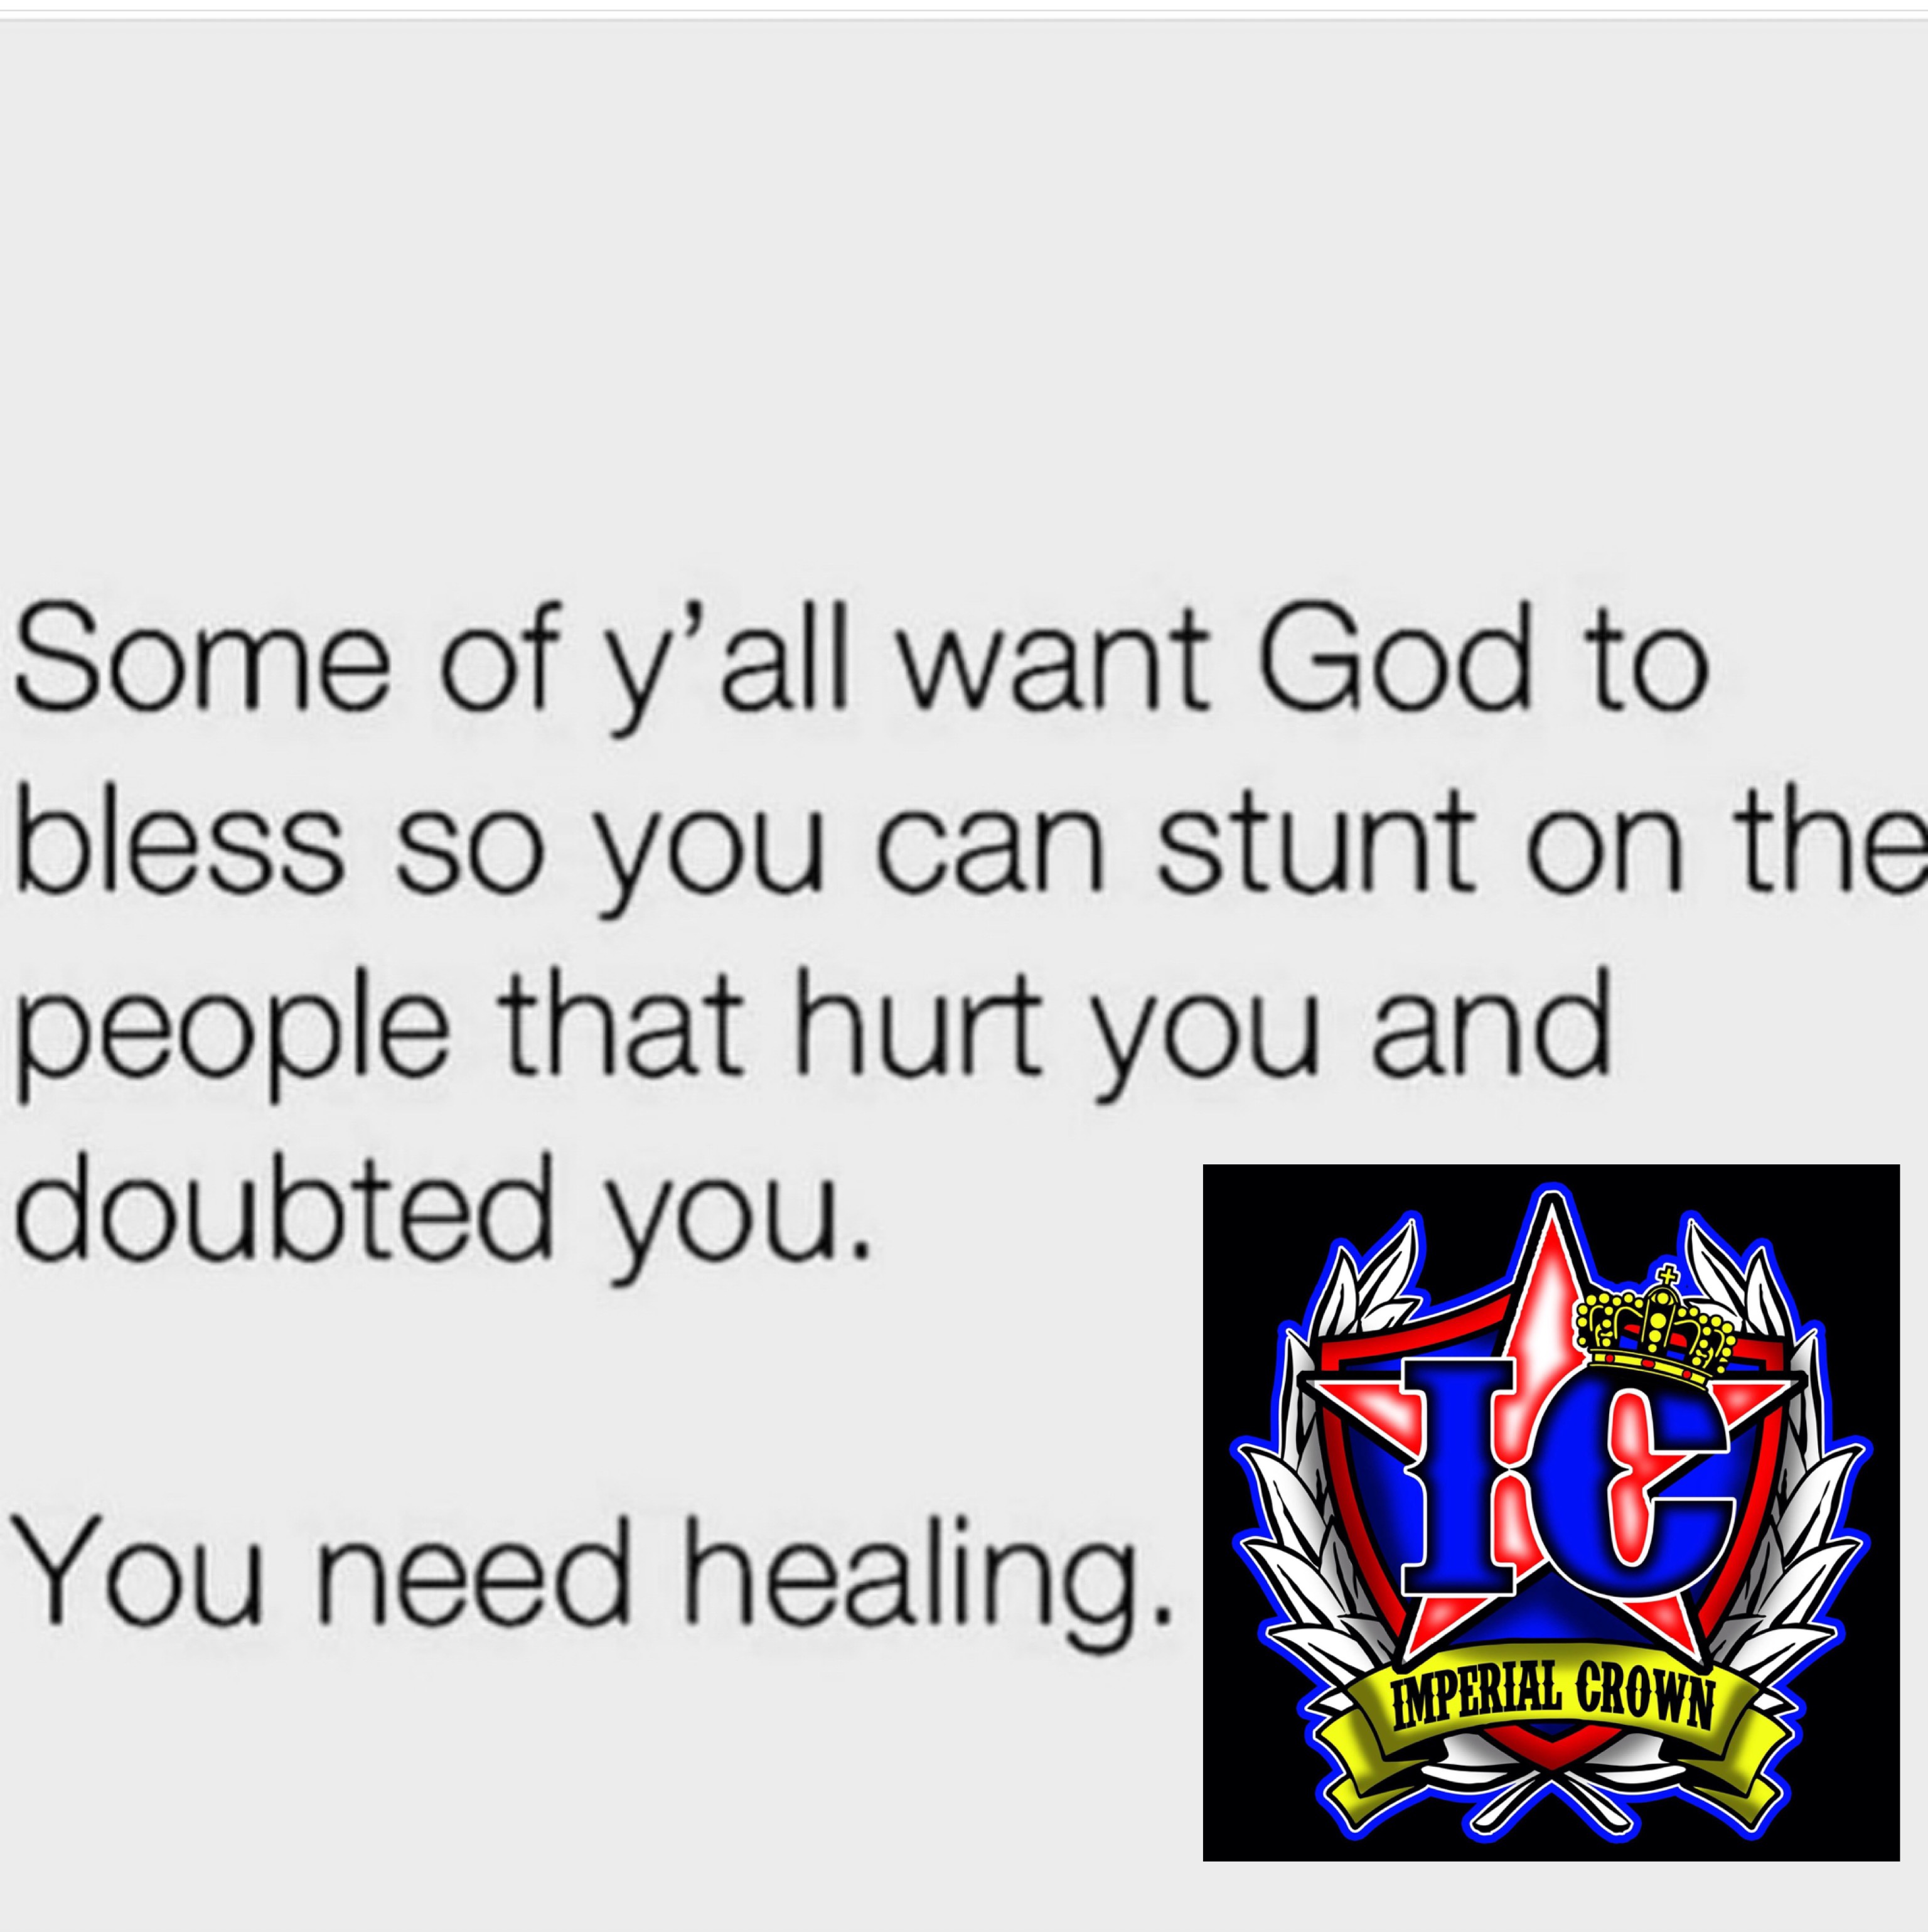 Some of y'all want God to bless so you can stunt on the people that hurt you